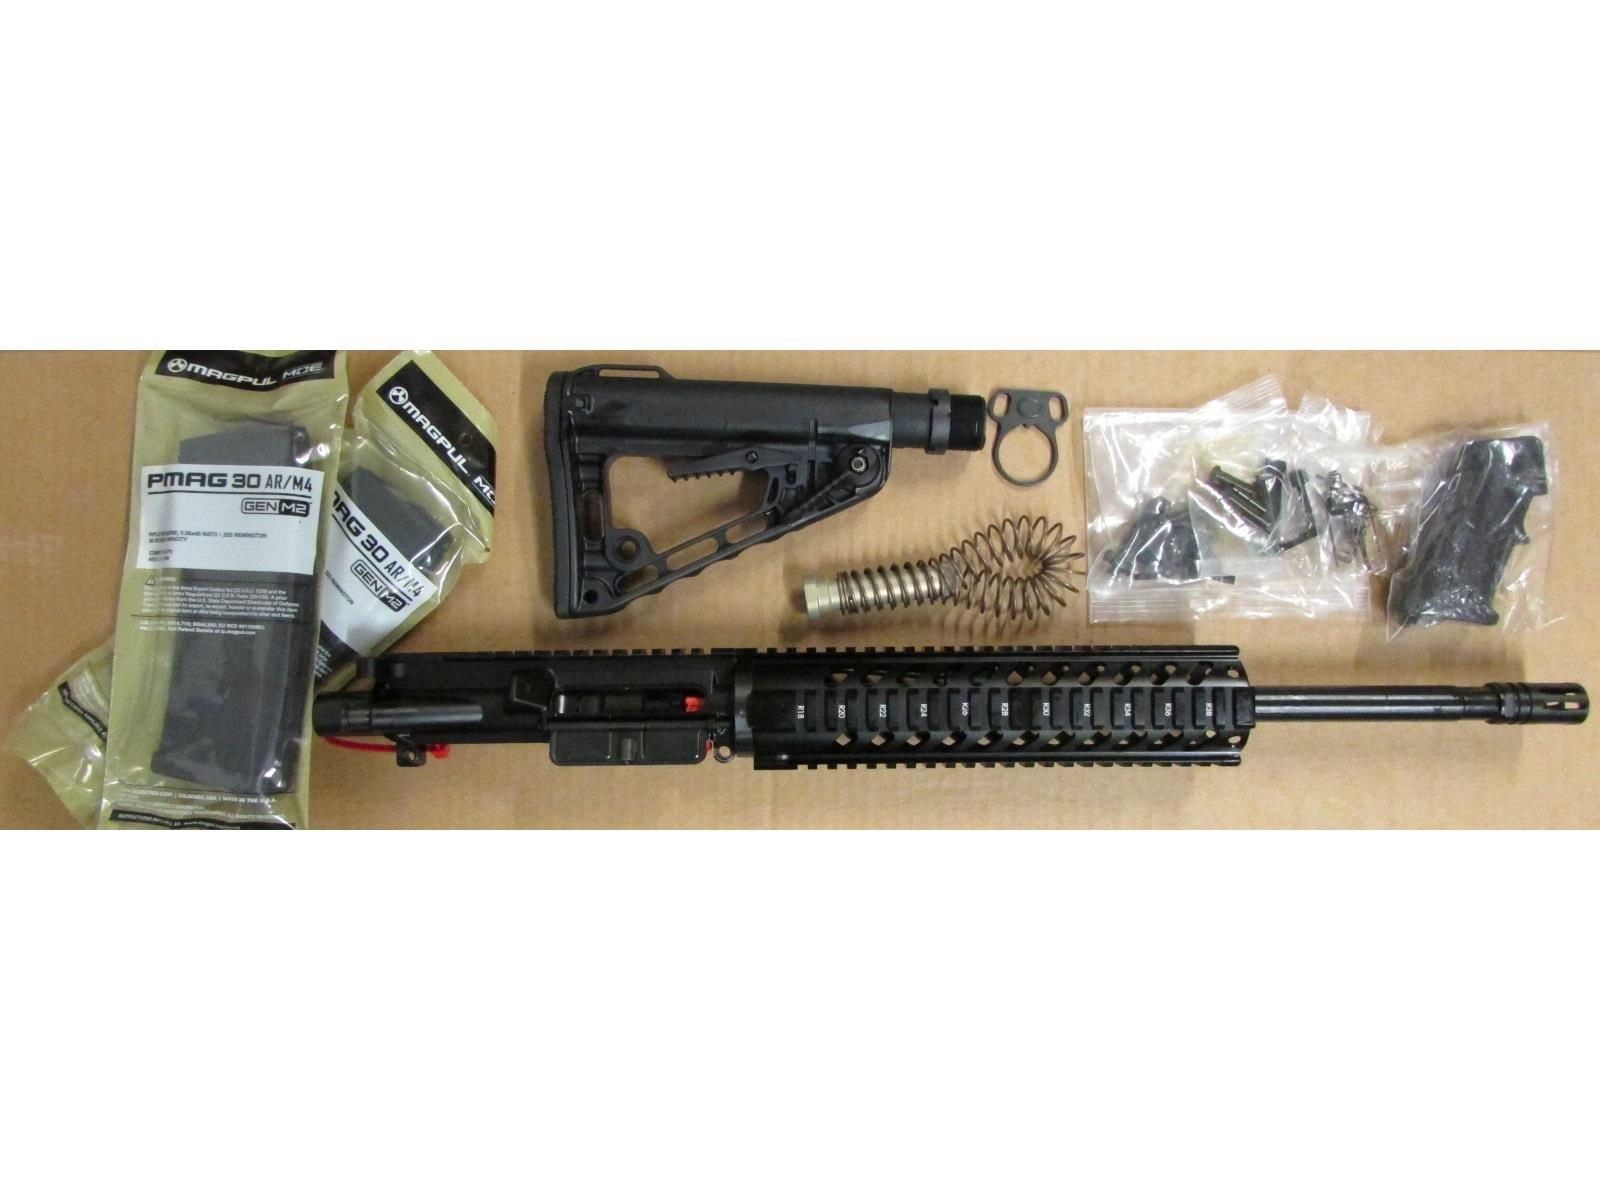 ATI 300 Blackout AR-15 Upper Rifle Parts Kit ATIRKT07P-2  Non-Guns > Gun Parts > M16-AR15 > Upper Only